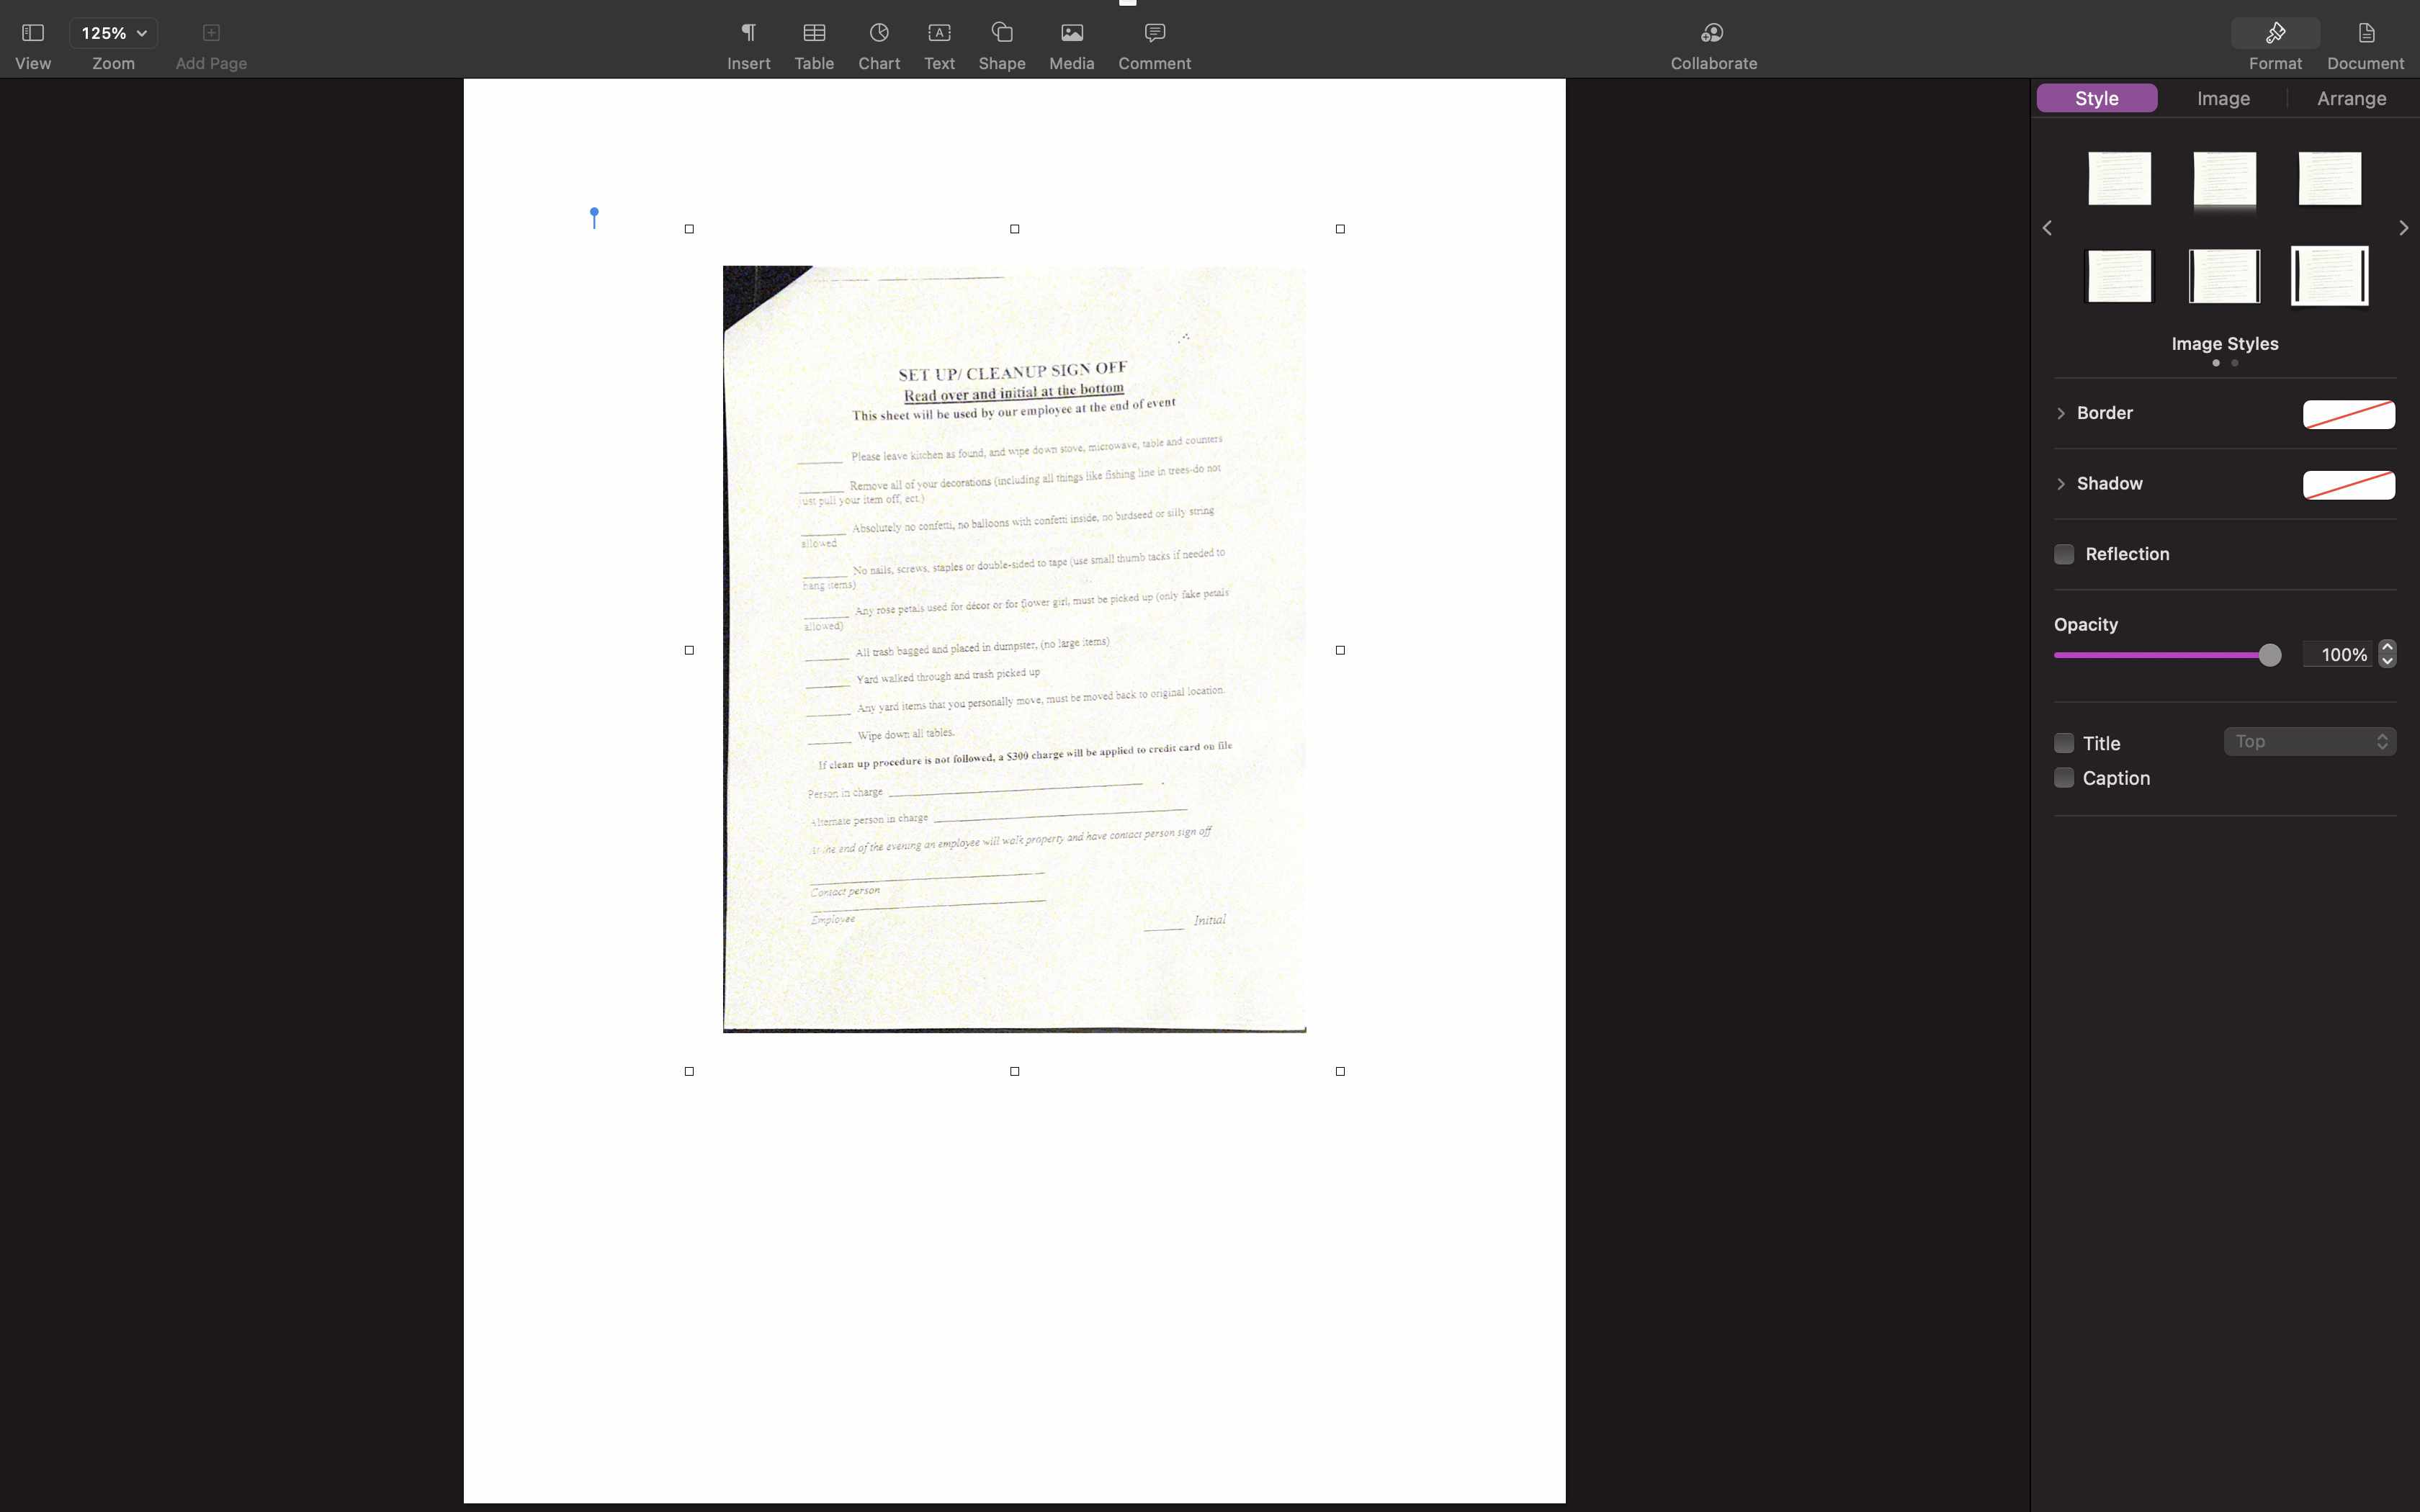 A scan inserted into a document in Pages on the Mac.